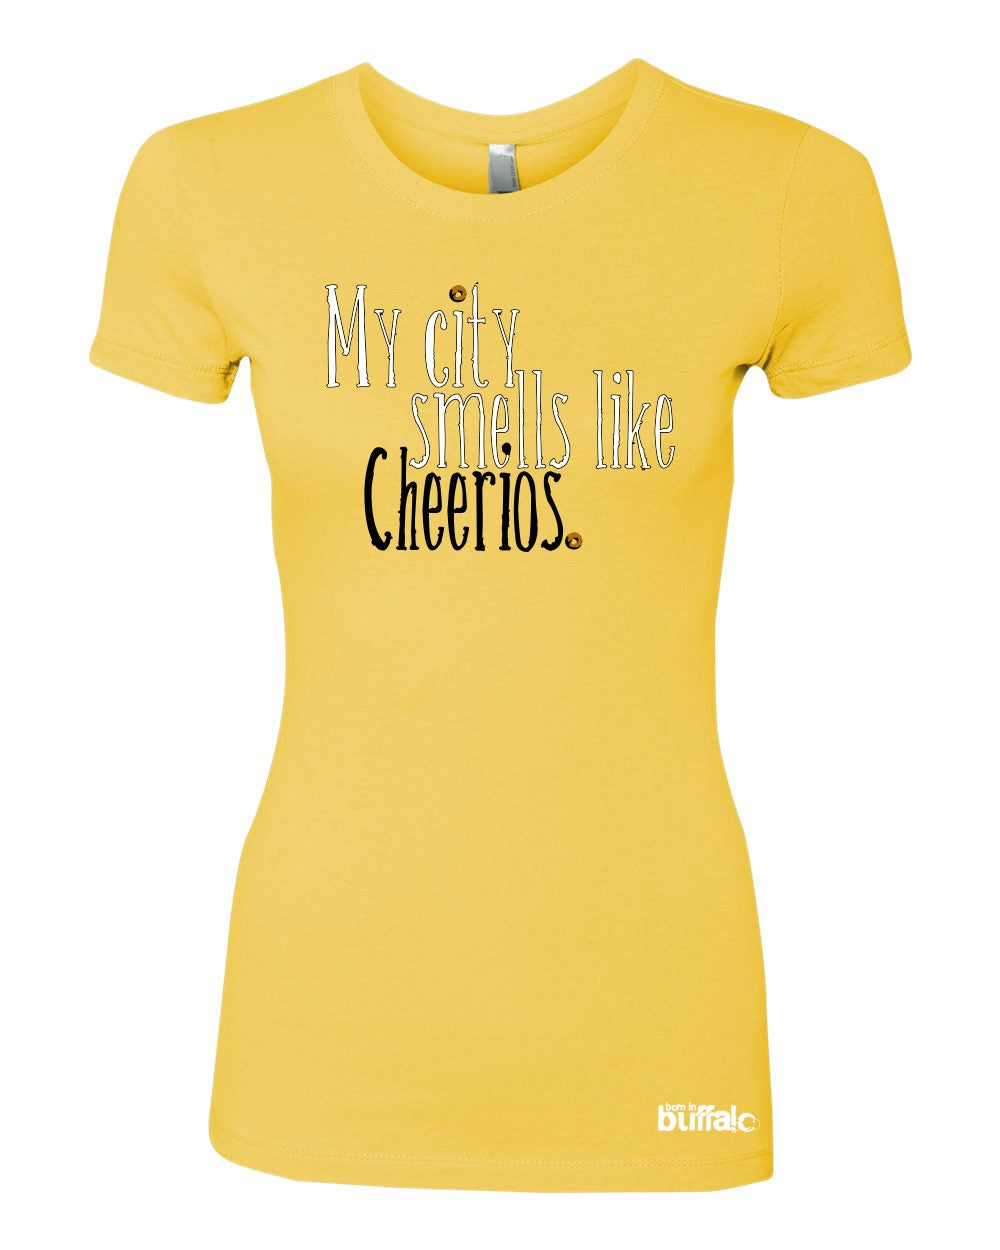 Image of My City Smells Like Cheerios JUNIORS T-Shirt PINK or YELLOW